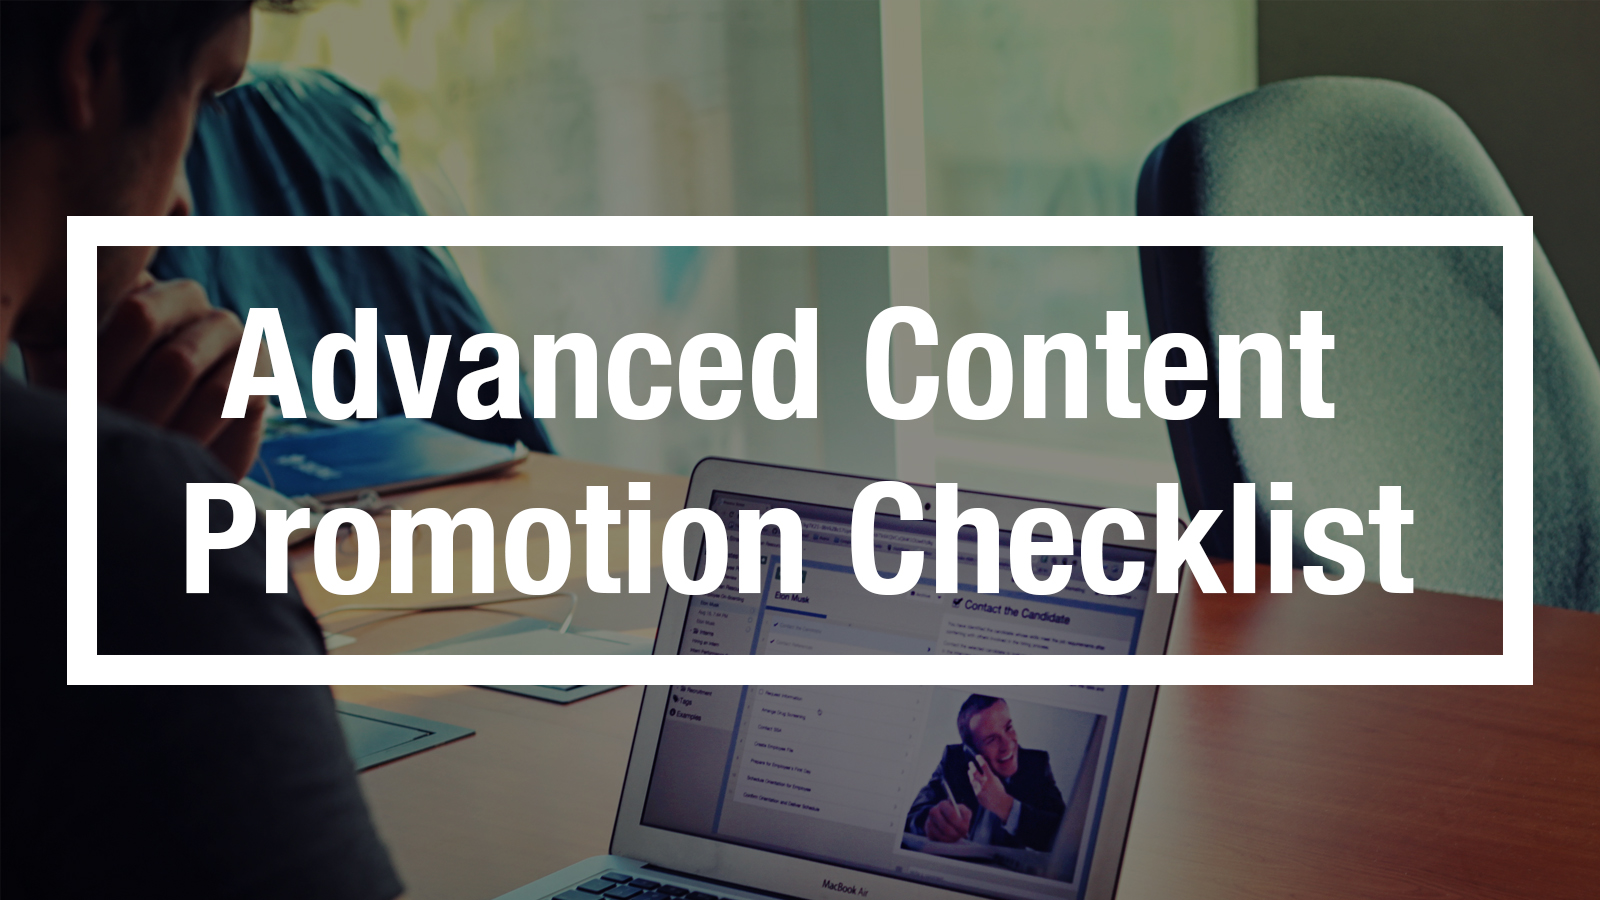 Content Promotion Checklist | Process Street